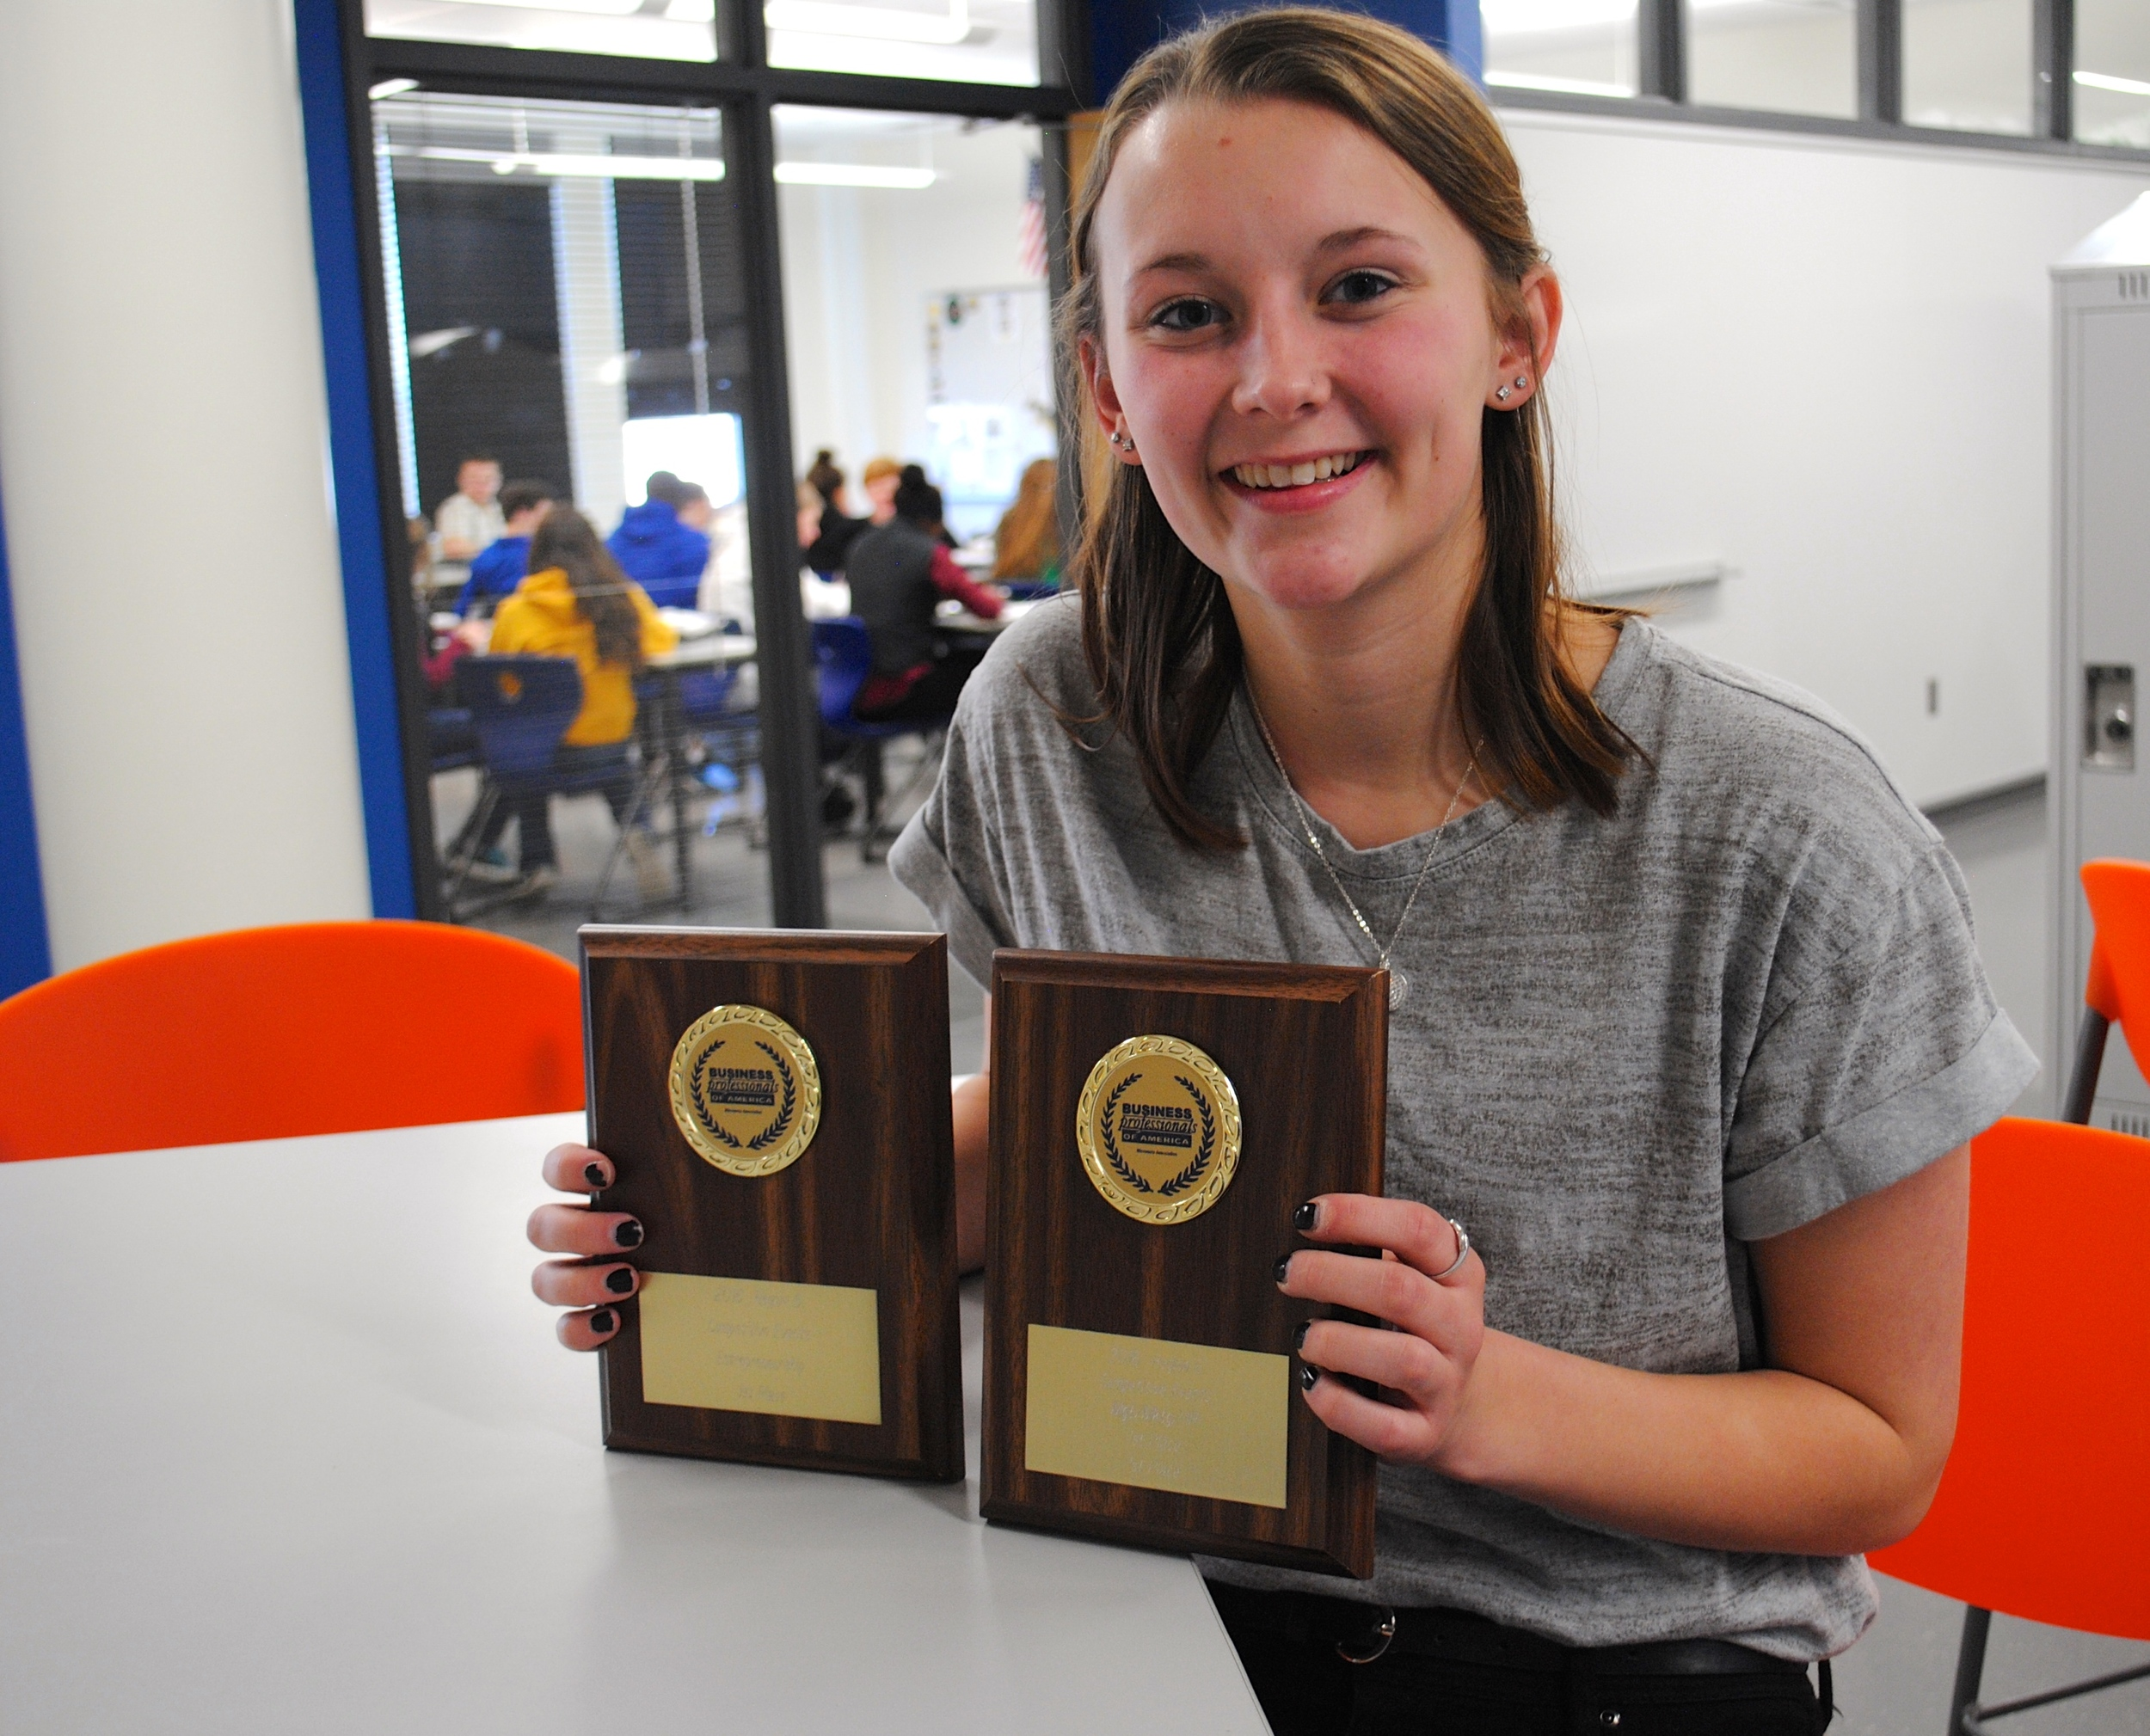 Wadena-Deer Creek senior Jessica Langer placed first in two categories at the Region 6 BPA competition. (Photo by Dana Pavek, WDC Schools)